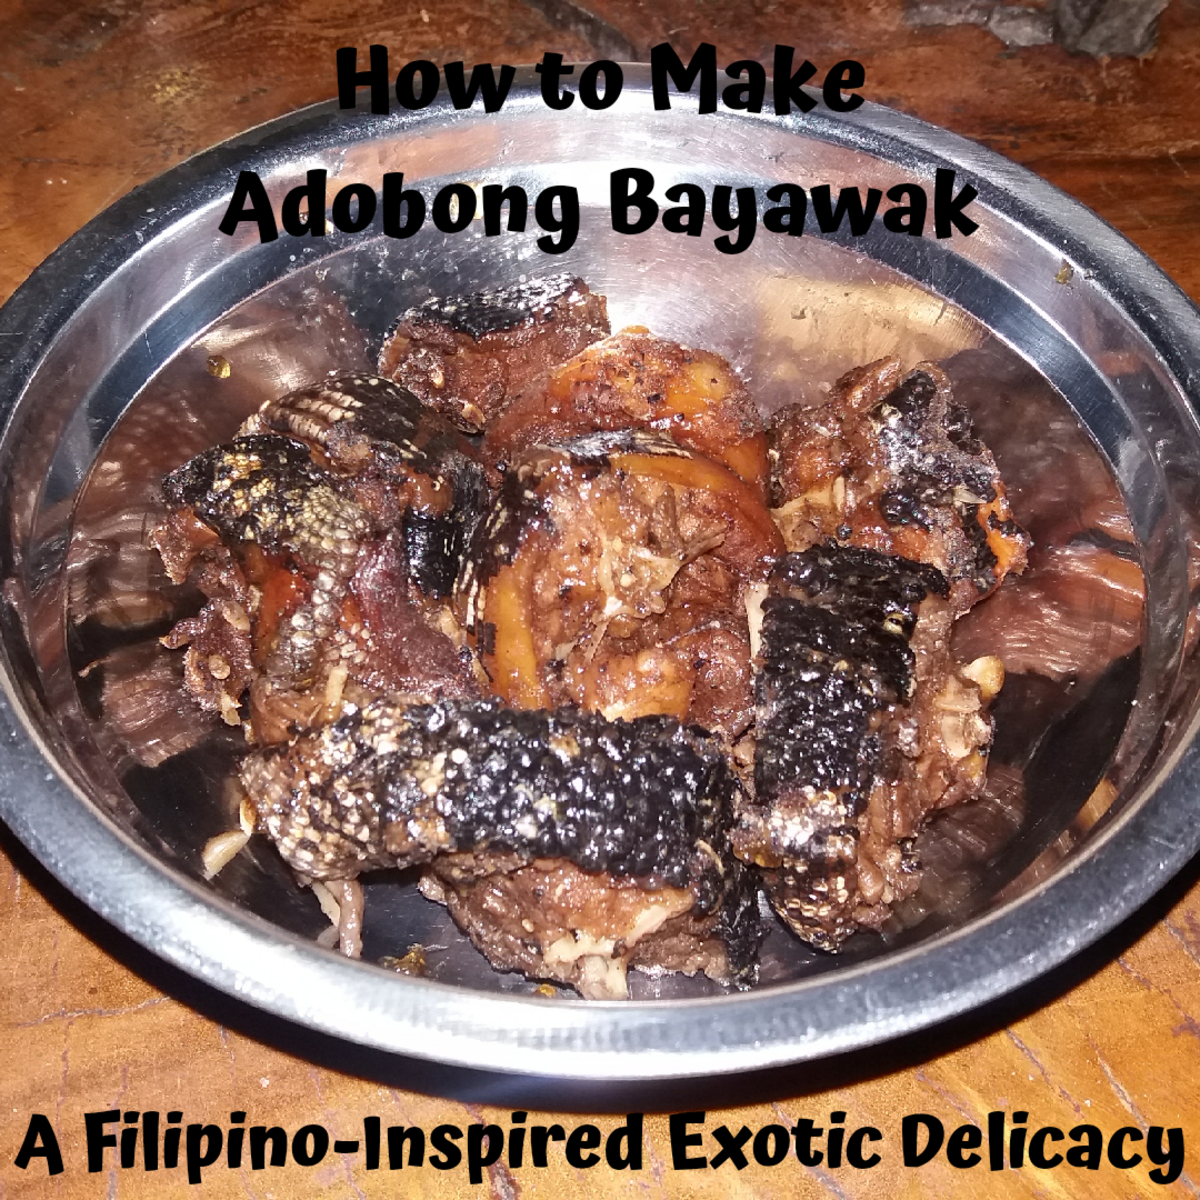 How to Make Adobong Bayawak: A Filipino-Inspired Delicacy